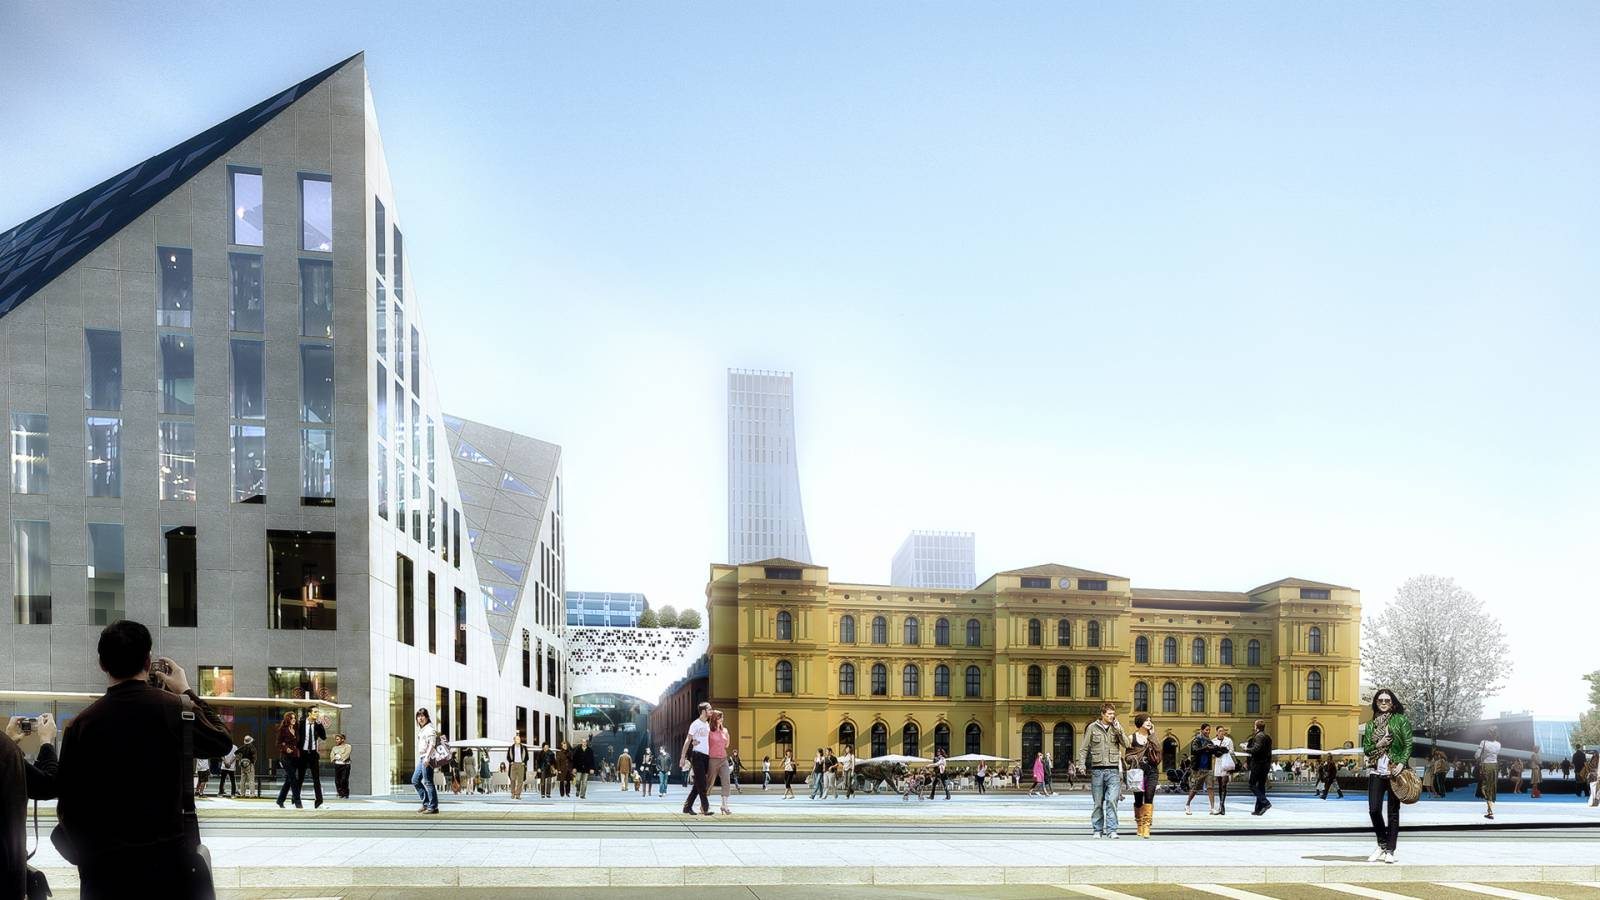 VIEW FROM KARL JOHANS GATE - OSLO CENTRAL STATION - SPOL Architects